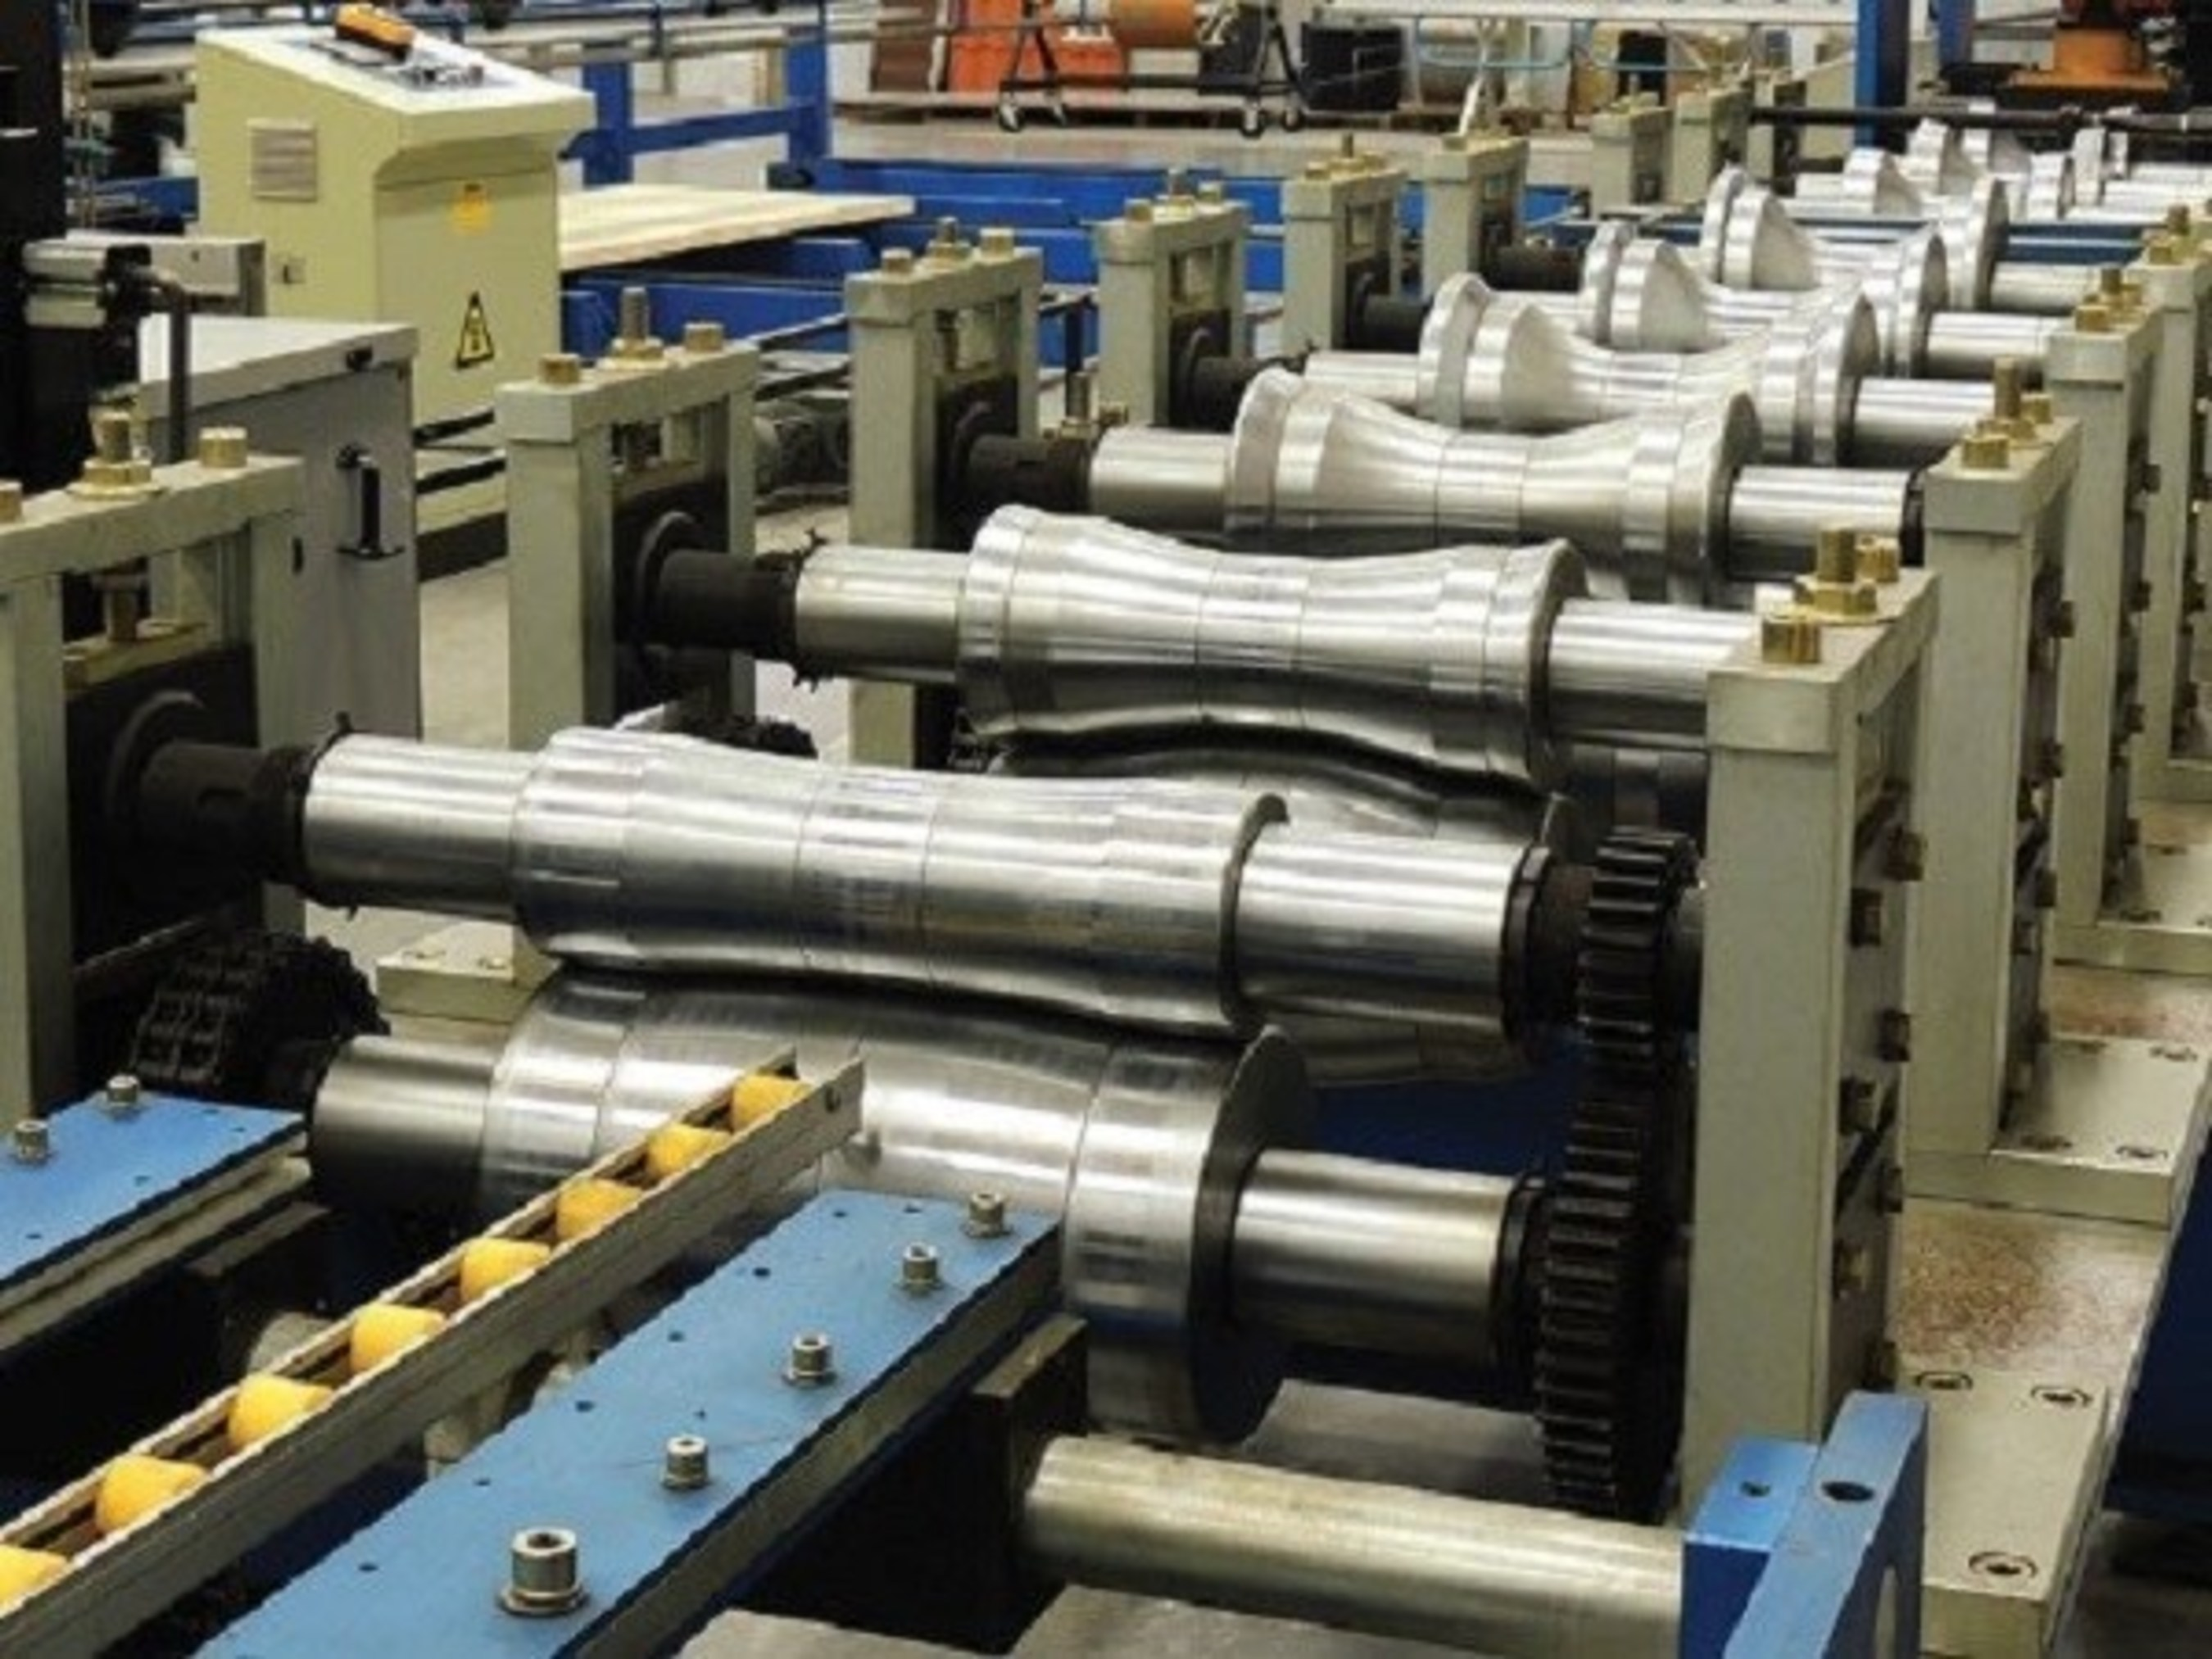 Roll Forming Line Typical of Those Used by GameChange Solar For Highly Automated Quality Steel Part Production